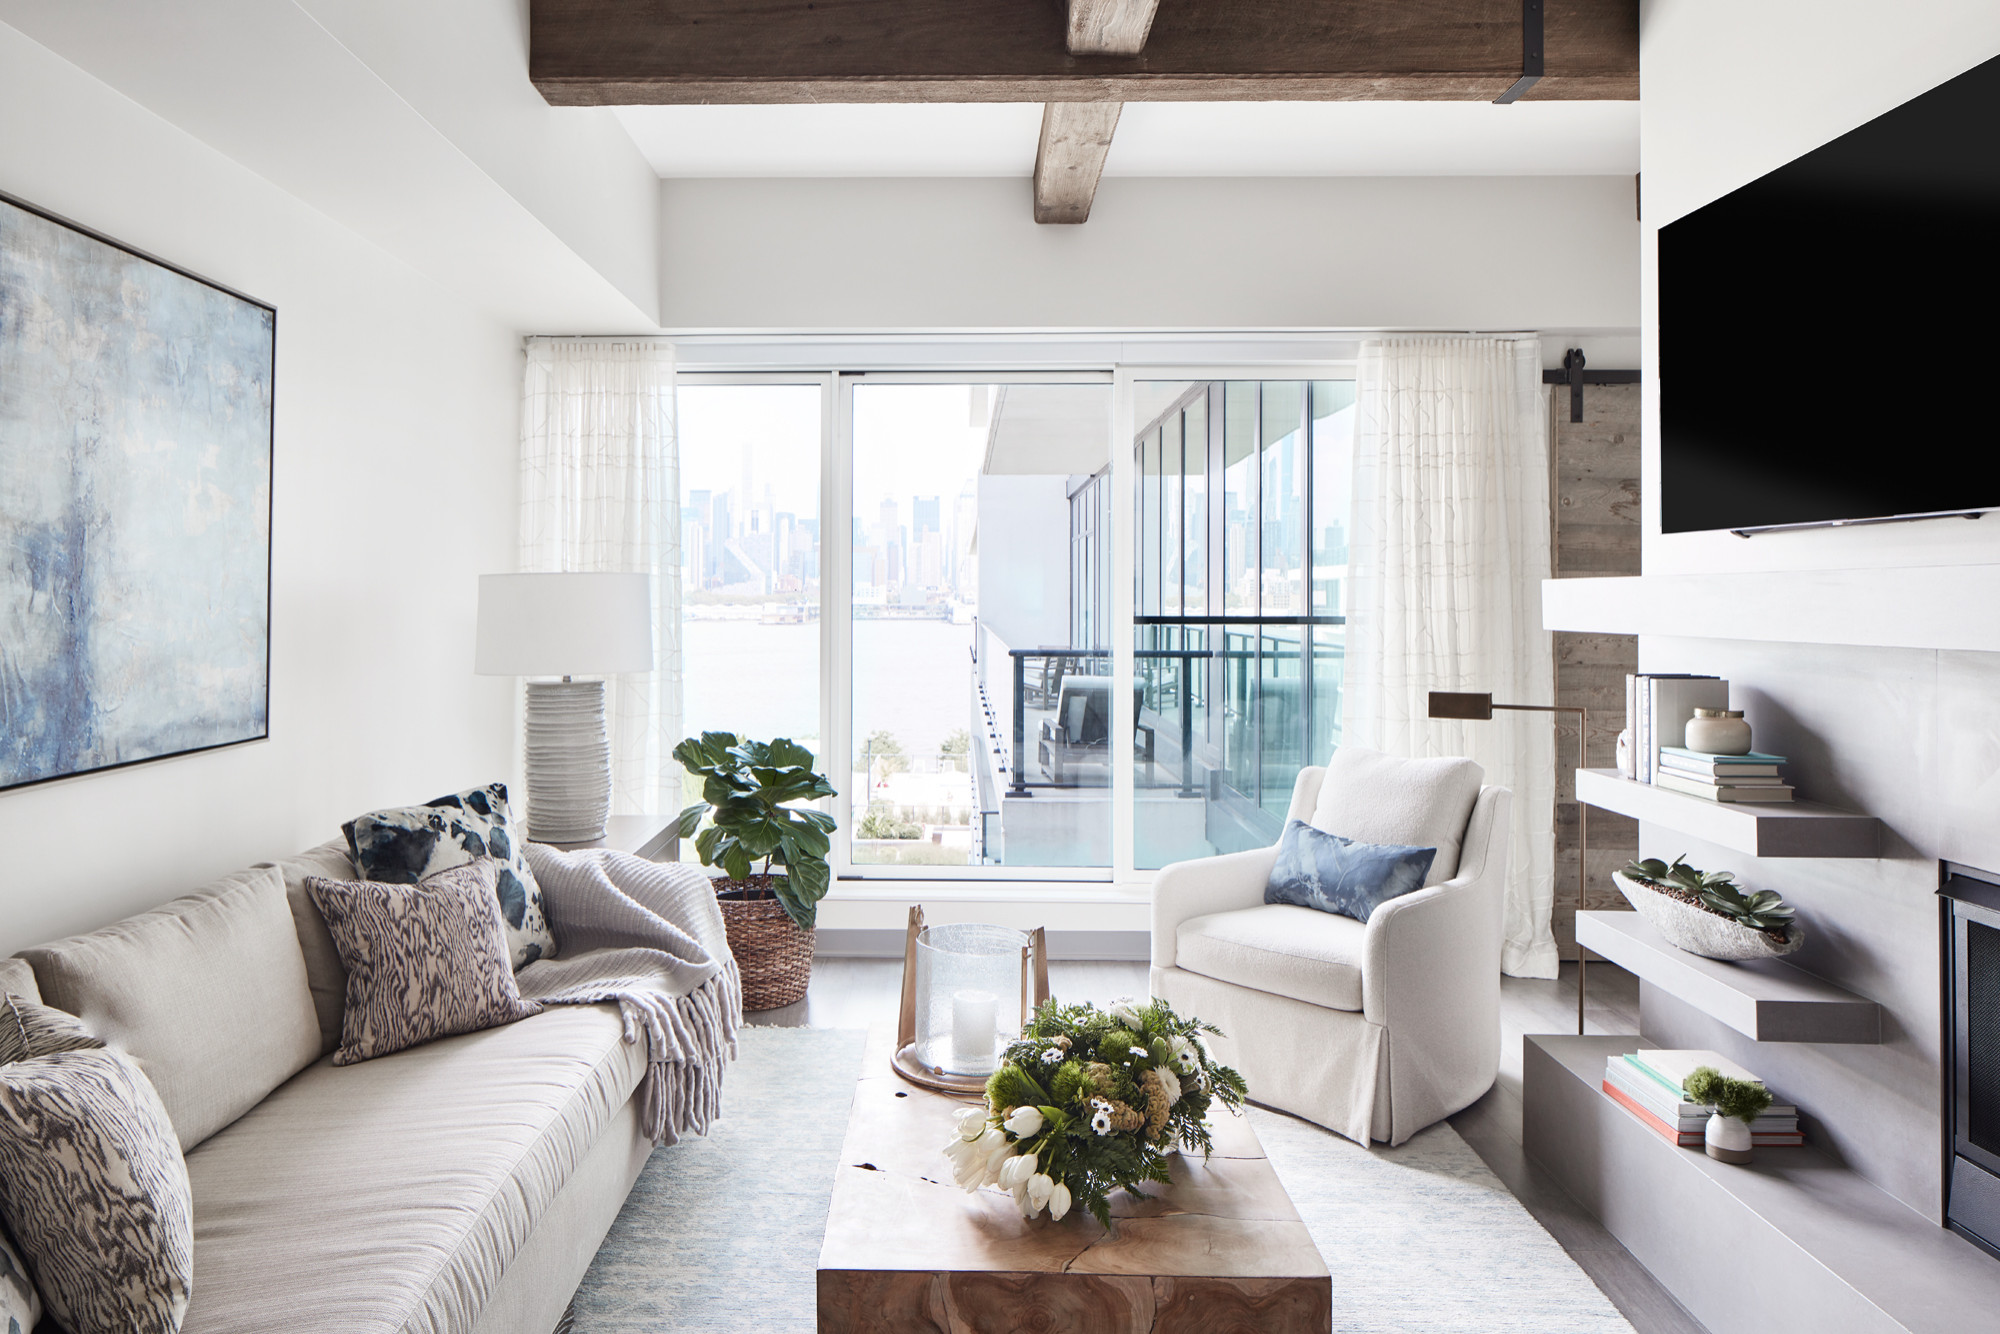 75 Beautiful Dark Wood Floor Living Room Pictures & Ideas - January, 2021 | Houzz